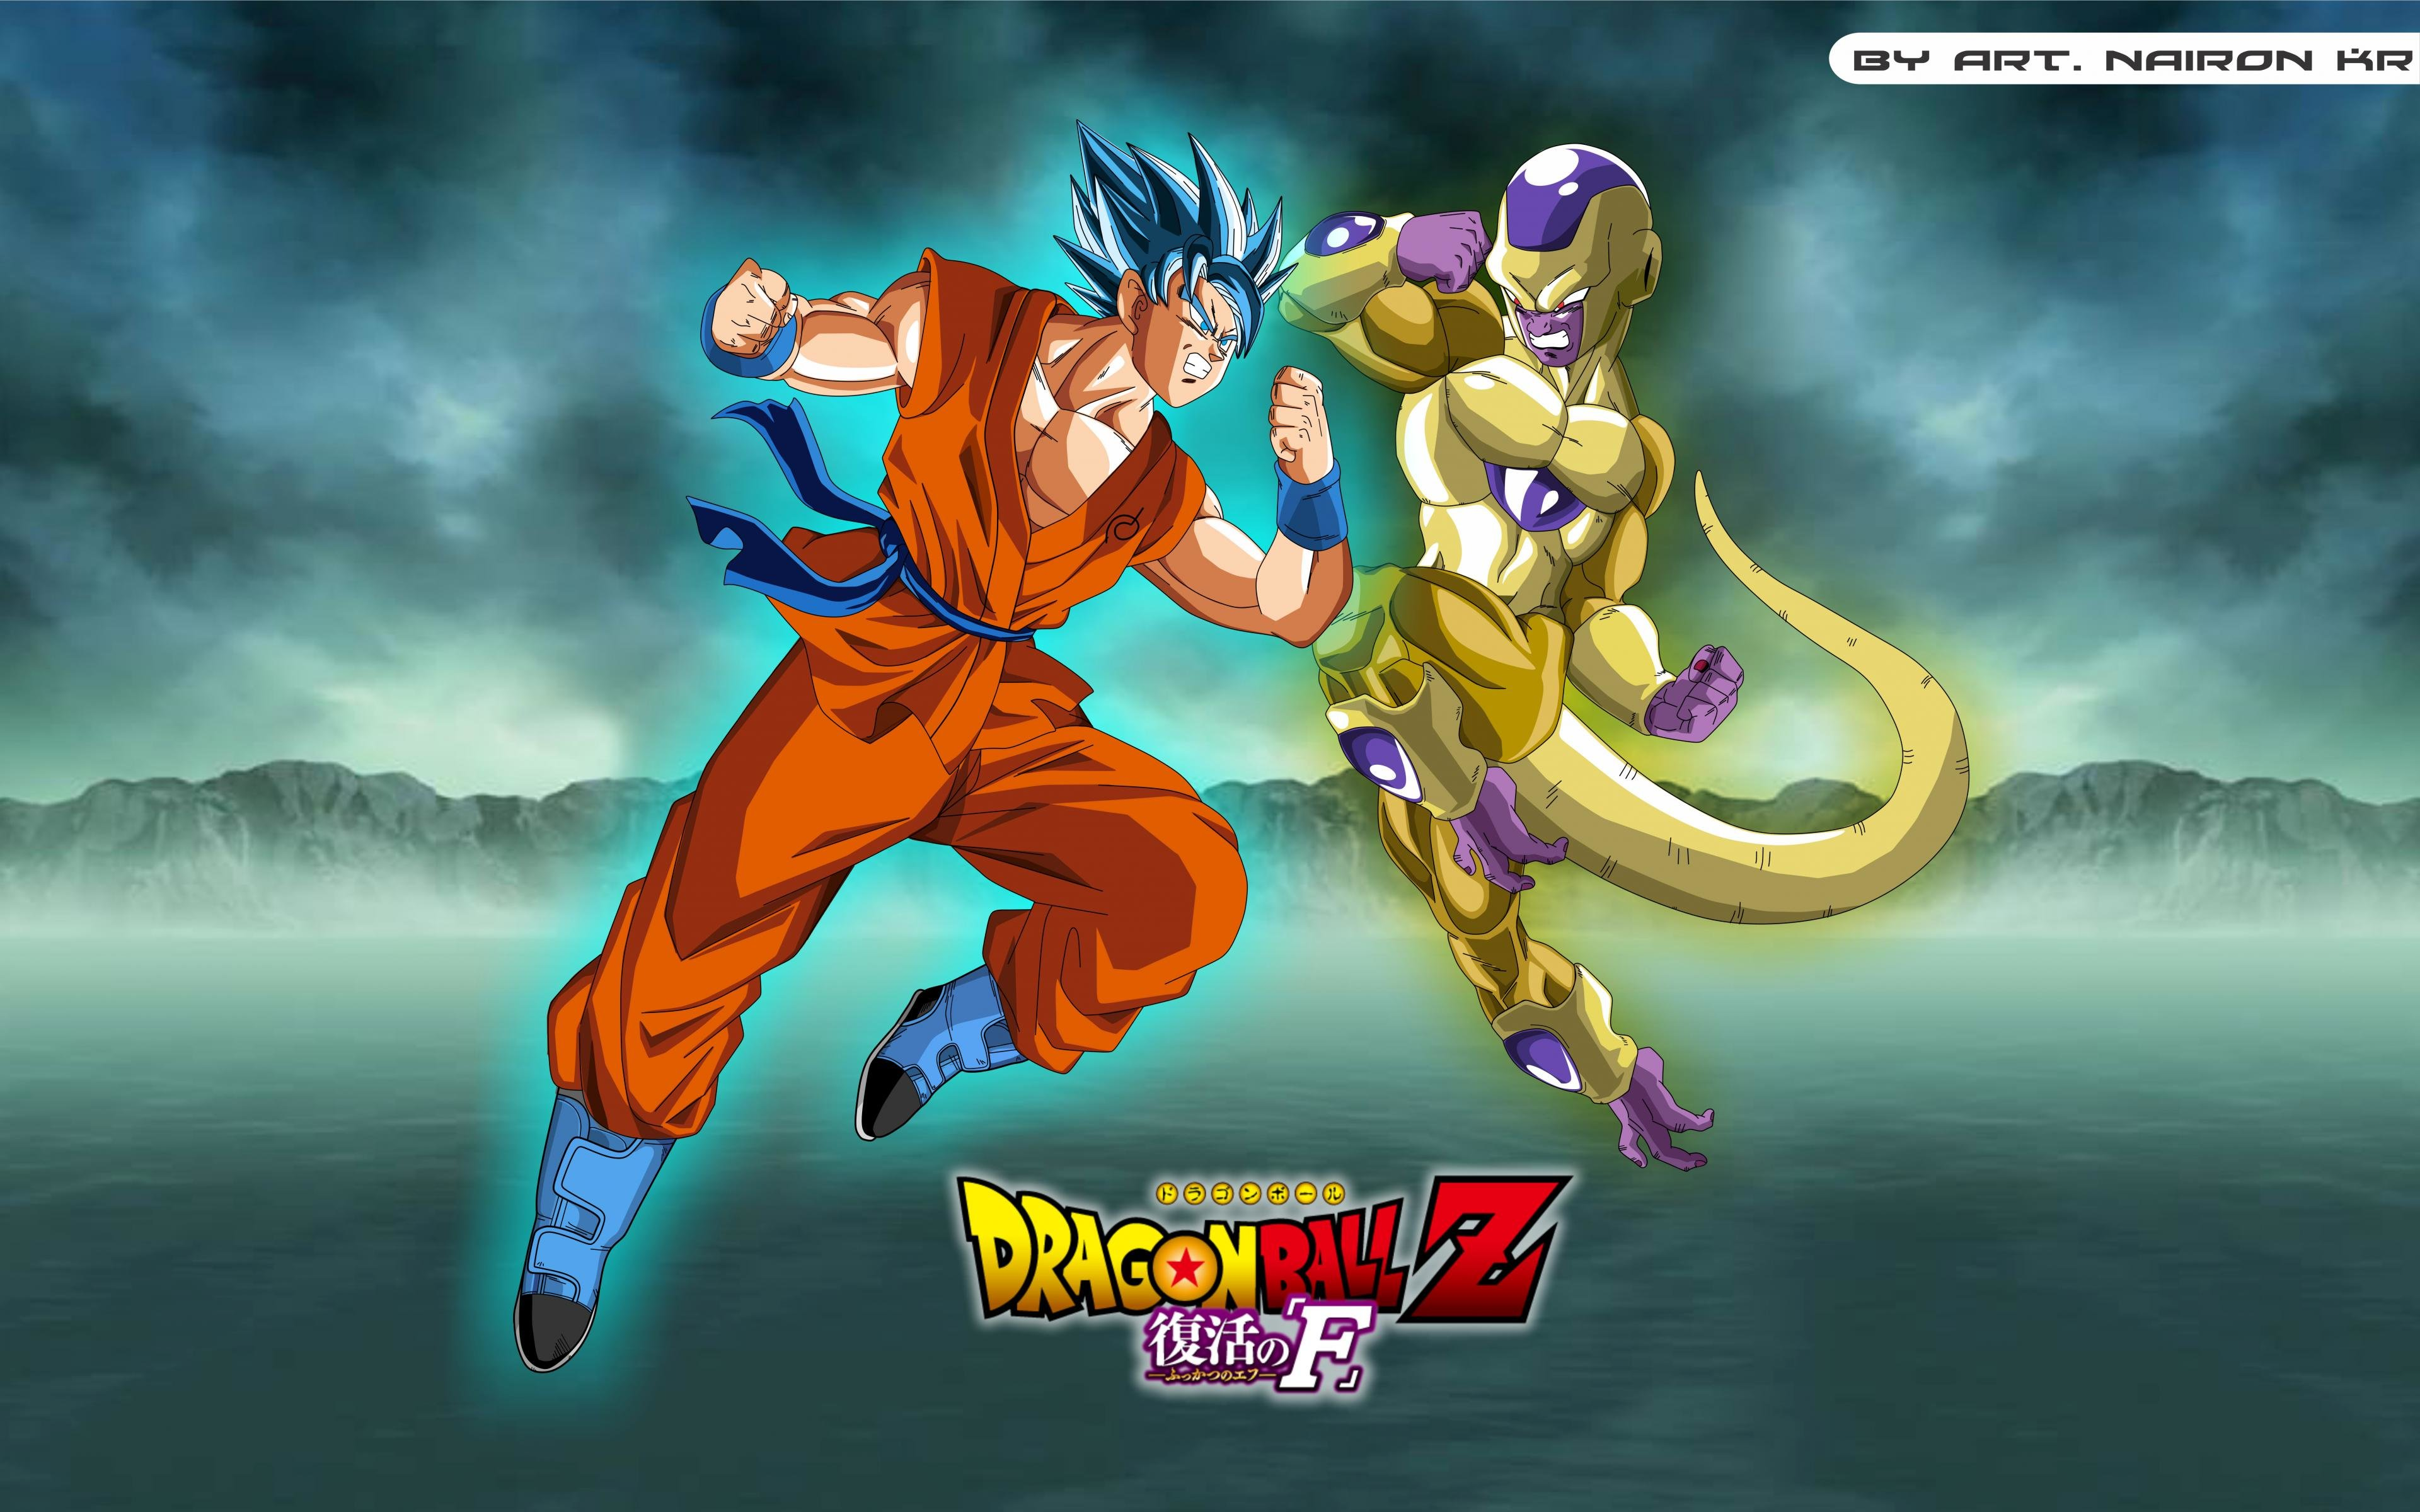 Free Dragon Ball Z: Resurrection Of F high quality wallpaper ID:391554 for hd 3840x2400 PC